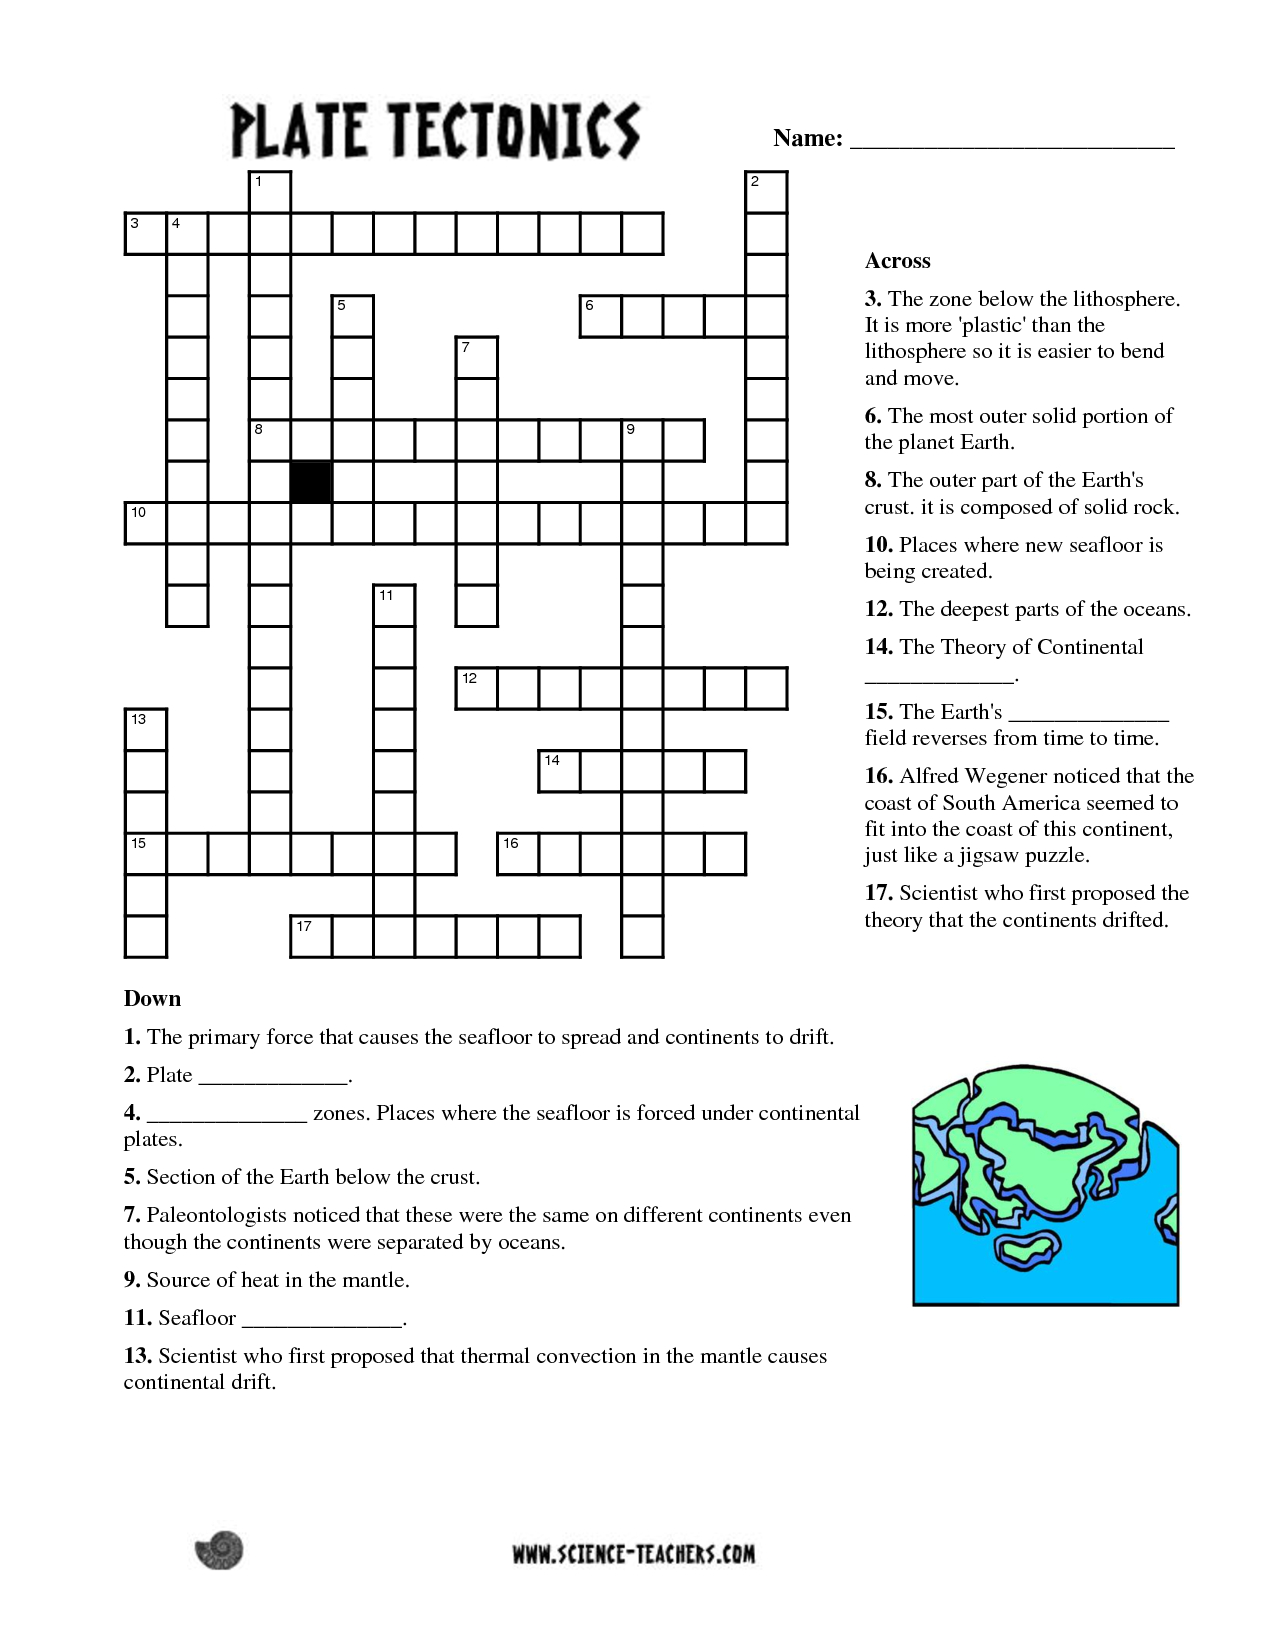 Planets Crossword Puzzle Worksheet - Pics About Space | Fun Science - Science Crossword Puzzles Printable